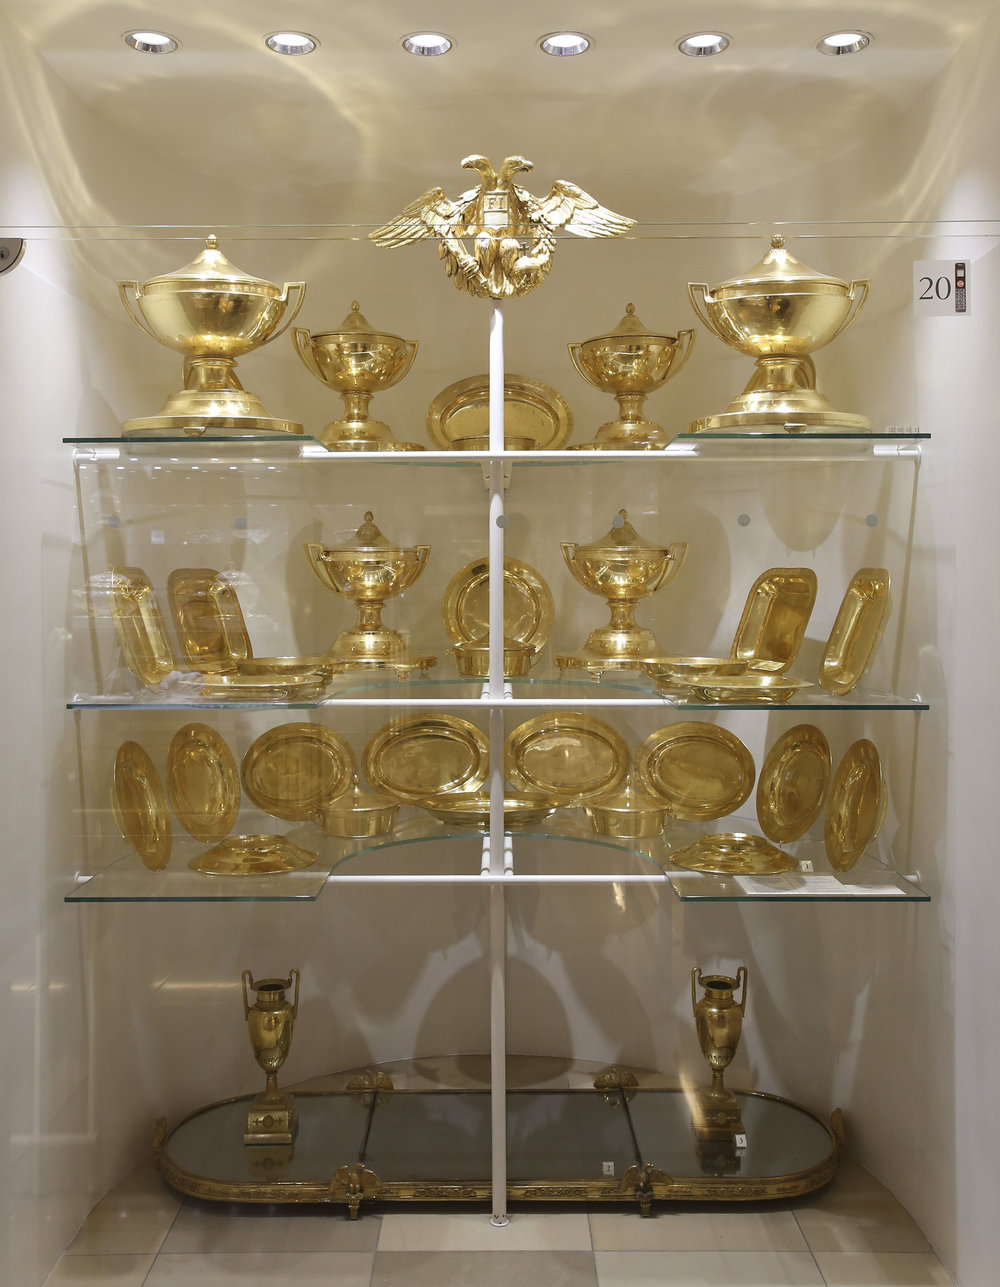 Silver collection at Hofburg